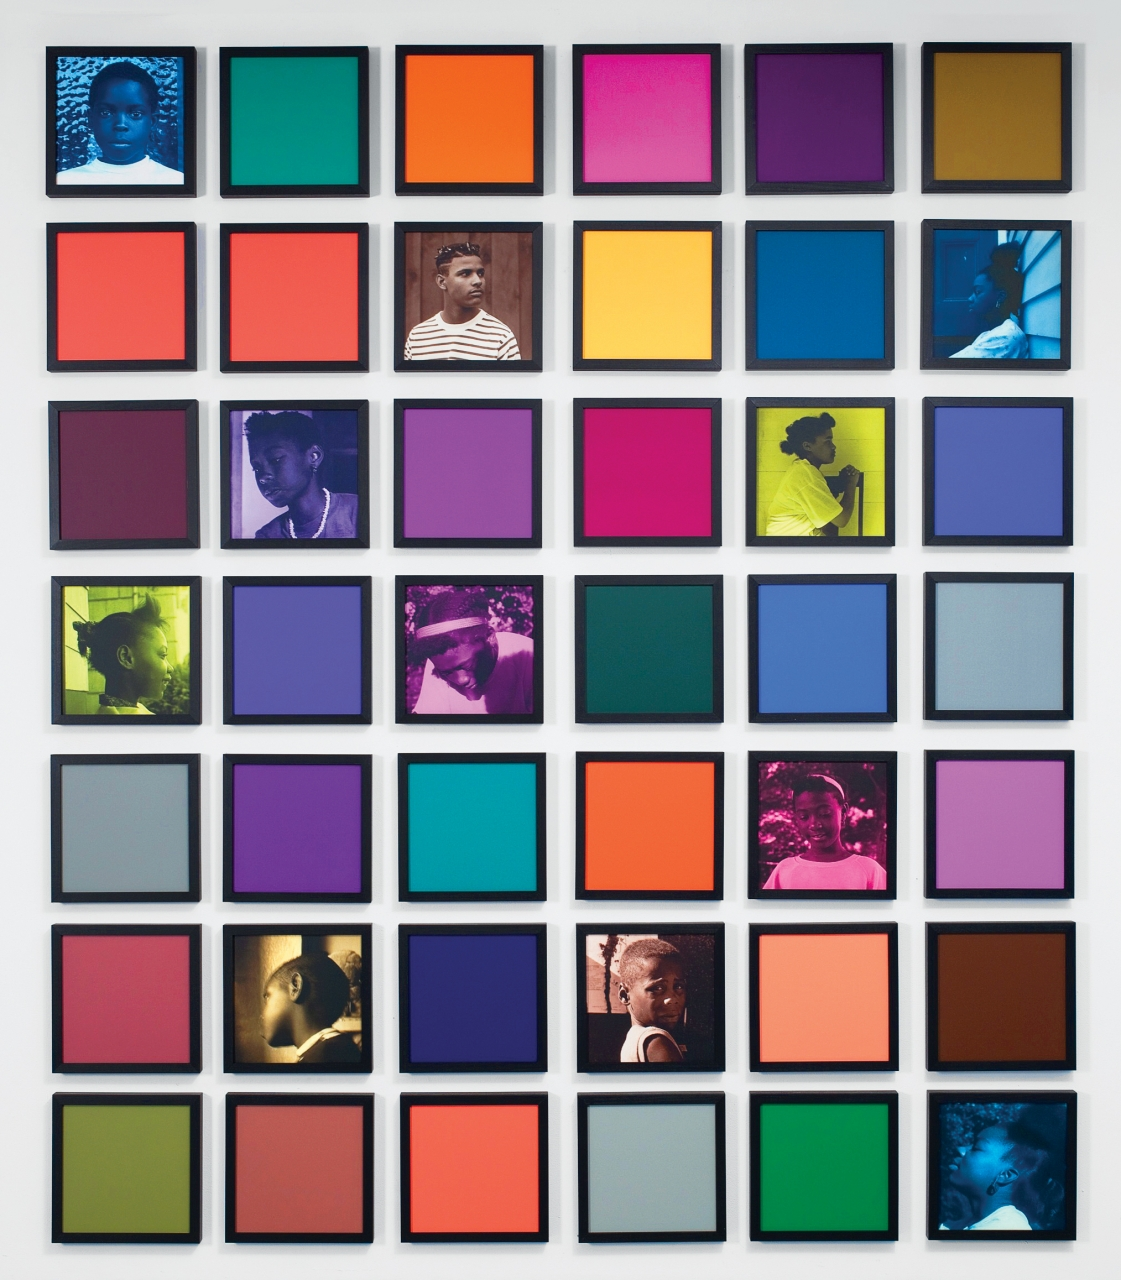 Carrie Mae Weems, Blending the BluesCurated by Bonnie RubensteinMay 1–July 27, Opening May 3, 6pm. CONTACT Gallery, 80 Spadina, Ste 205Carrie Mae Weems, HeaveCurated by Bonnie RubensteinMay 4–July 27, Opening May 4, 6pm. Art Museum at UofT–Justina M. Barnicke Gallery, Hart House CircleCarrie Mae Weems' Public Installations include:Anointed, April 18–September 6. 460 King St WSlow Fade to Black, April 26–June 4. Metro Hall, King St W at John StScenes and Take, May 1–31. TIFF Bell Lightbox, 350 King St W - image: Carrie Mae Weems, Untitled (Colored People Grid), 2009. Courtesy the artist and Jack Shainman Gallery, New York, NY